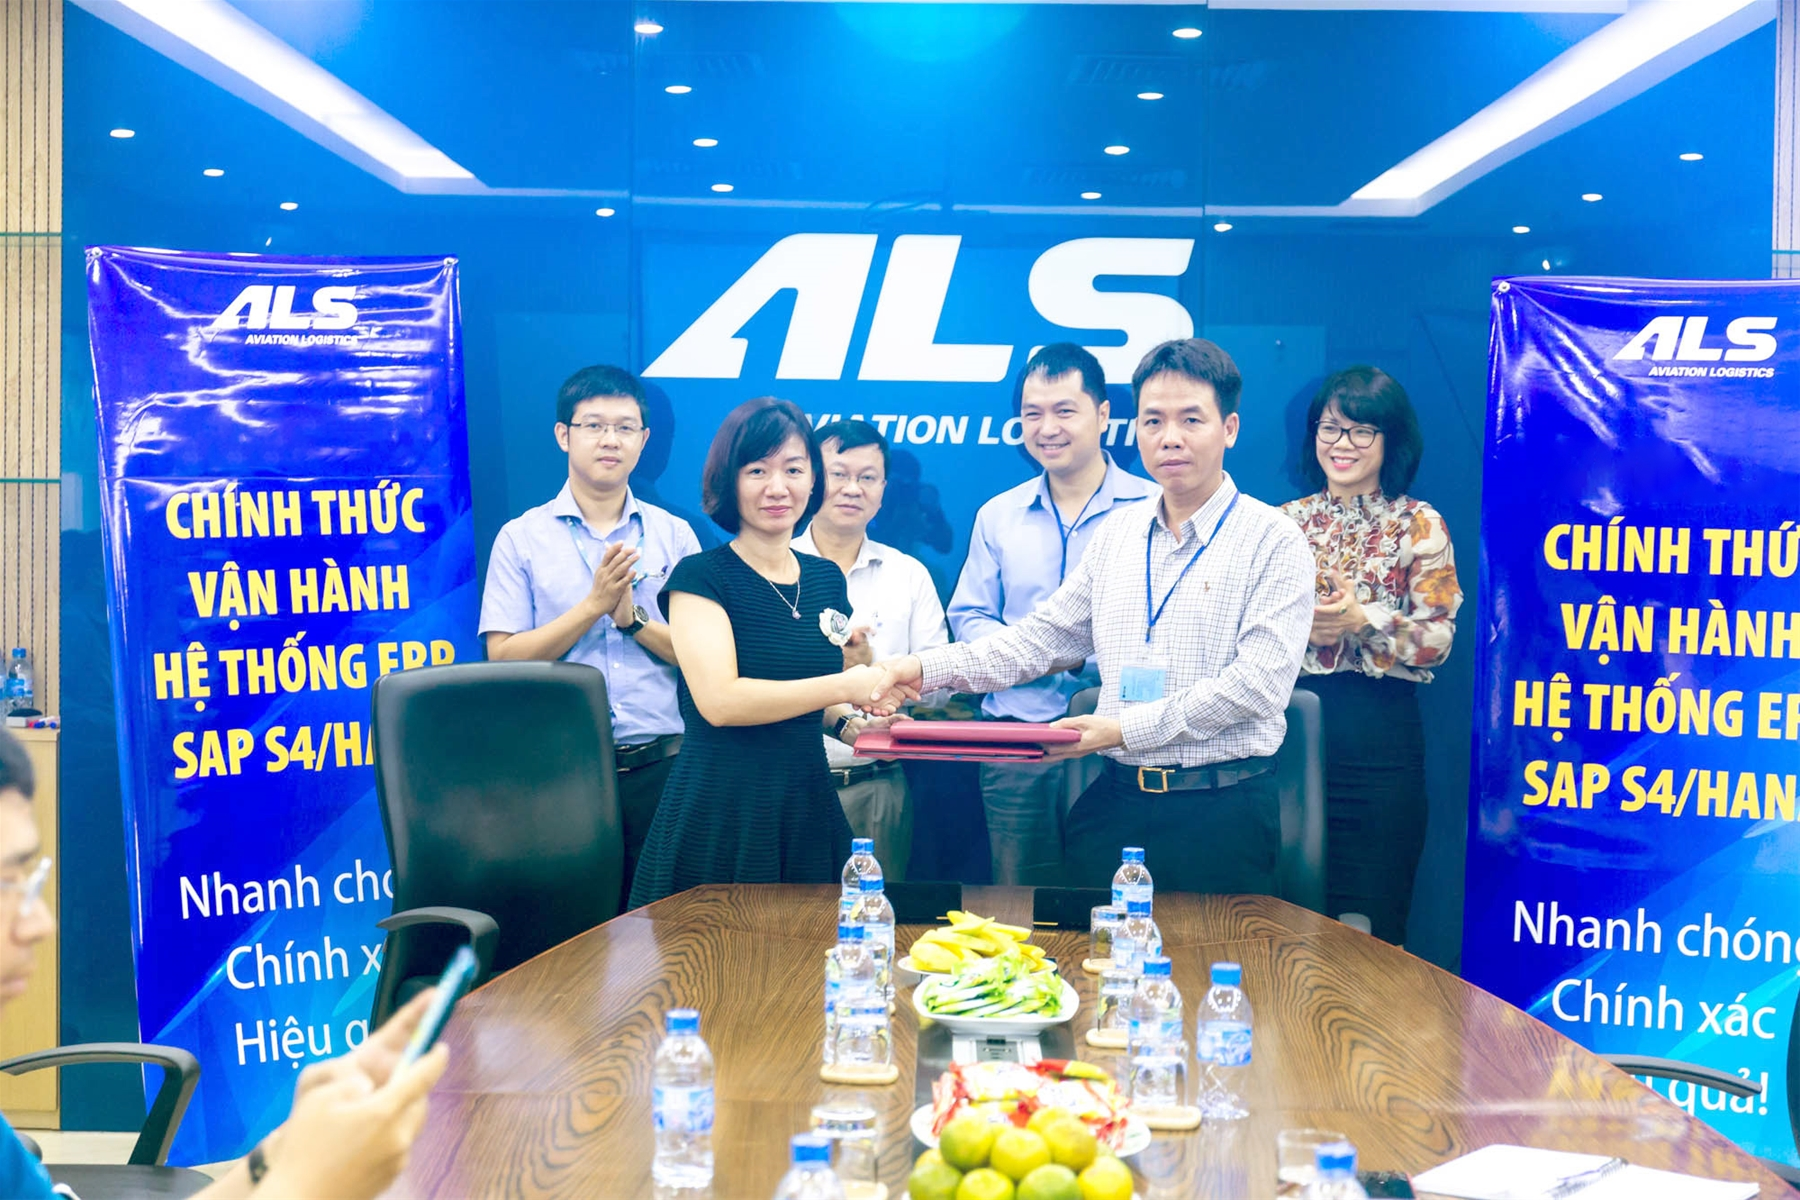 Aviation Logistics Corporation officially launches ERP to improve governance in the era of digital transformation